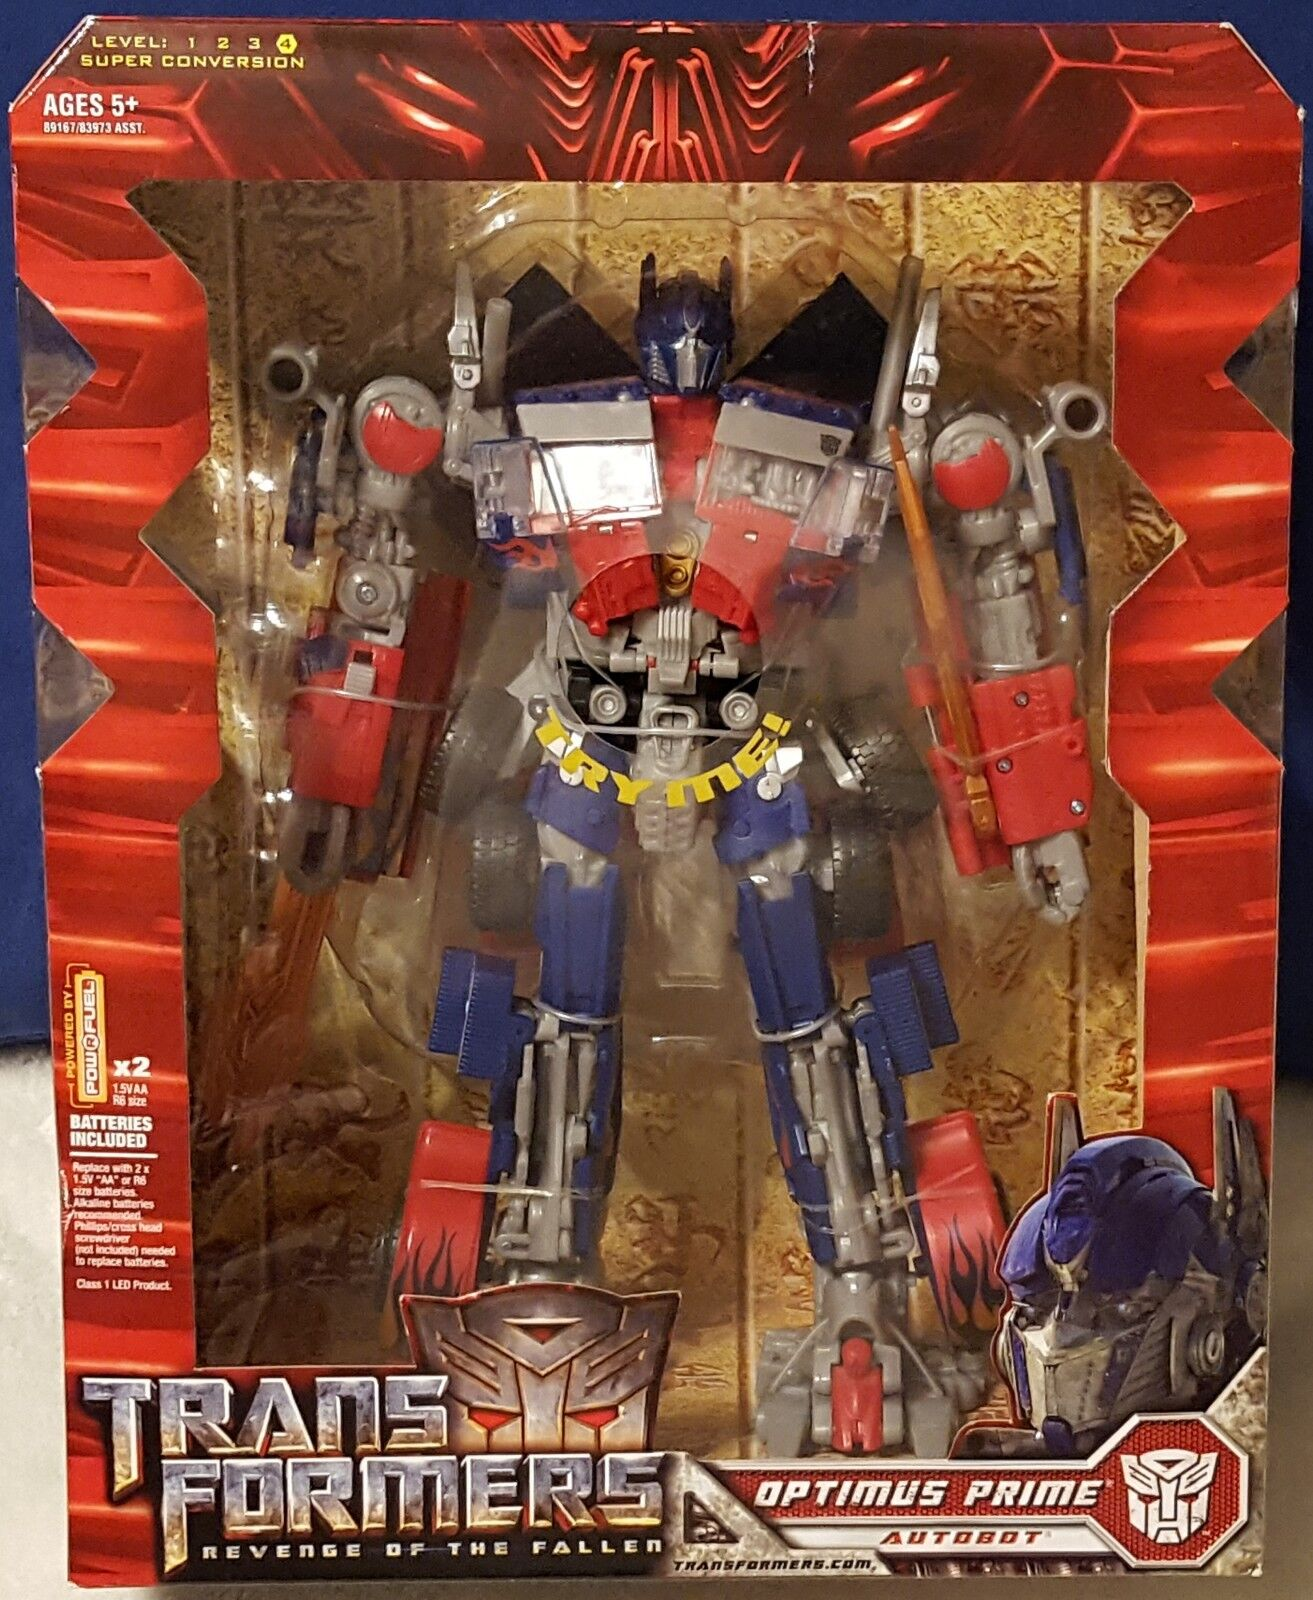 Optimus Prime Revenge of the Fallen Leader Class Transformers 2009 Figure